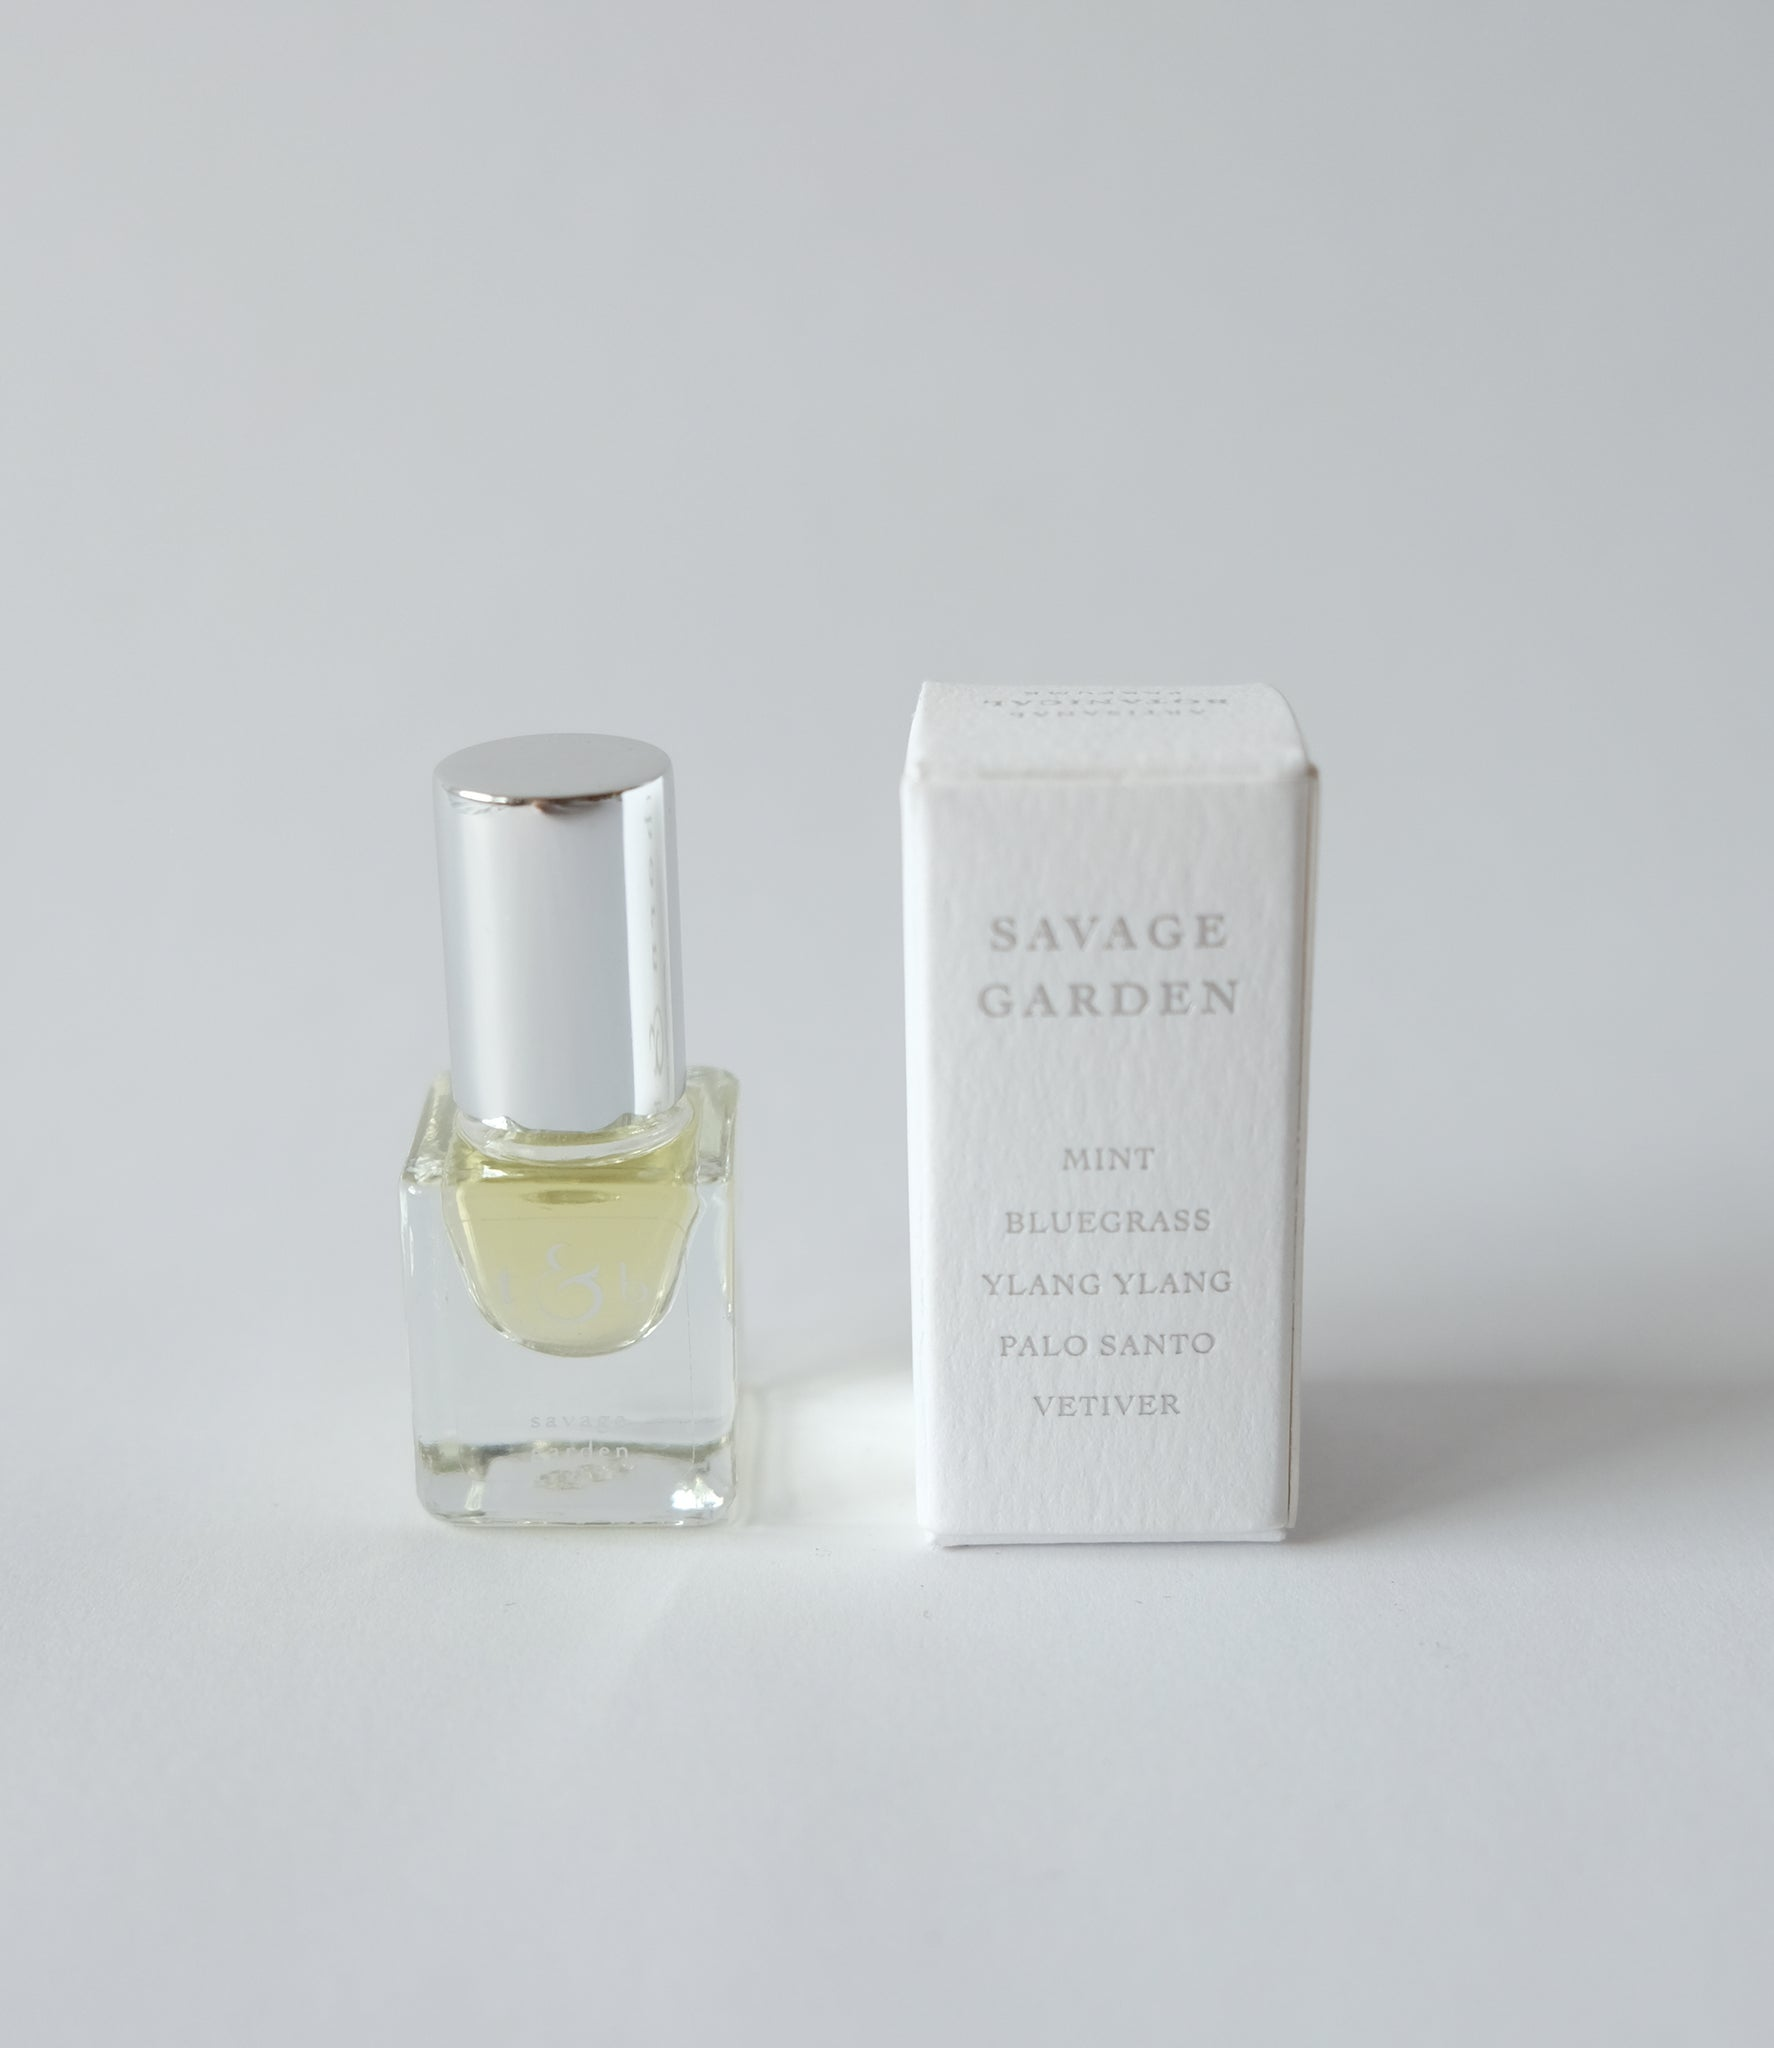 Thorn and Bloom / Savage Garden Perfume